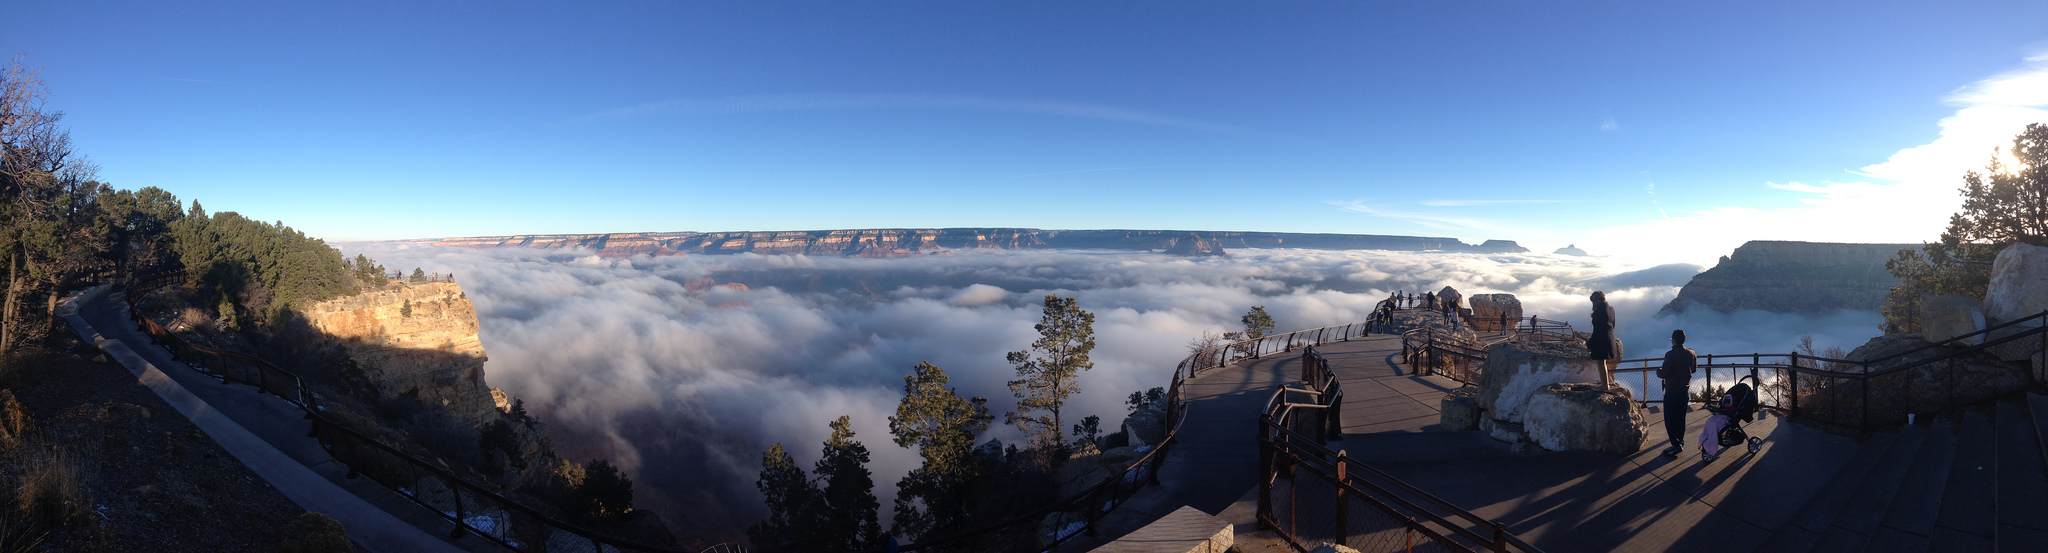 Figure 1 - The Grand Canyon filled with fog on November 29, 2013 by Erin Whitaker via the US NPS and in the public domain.